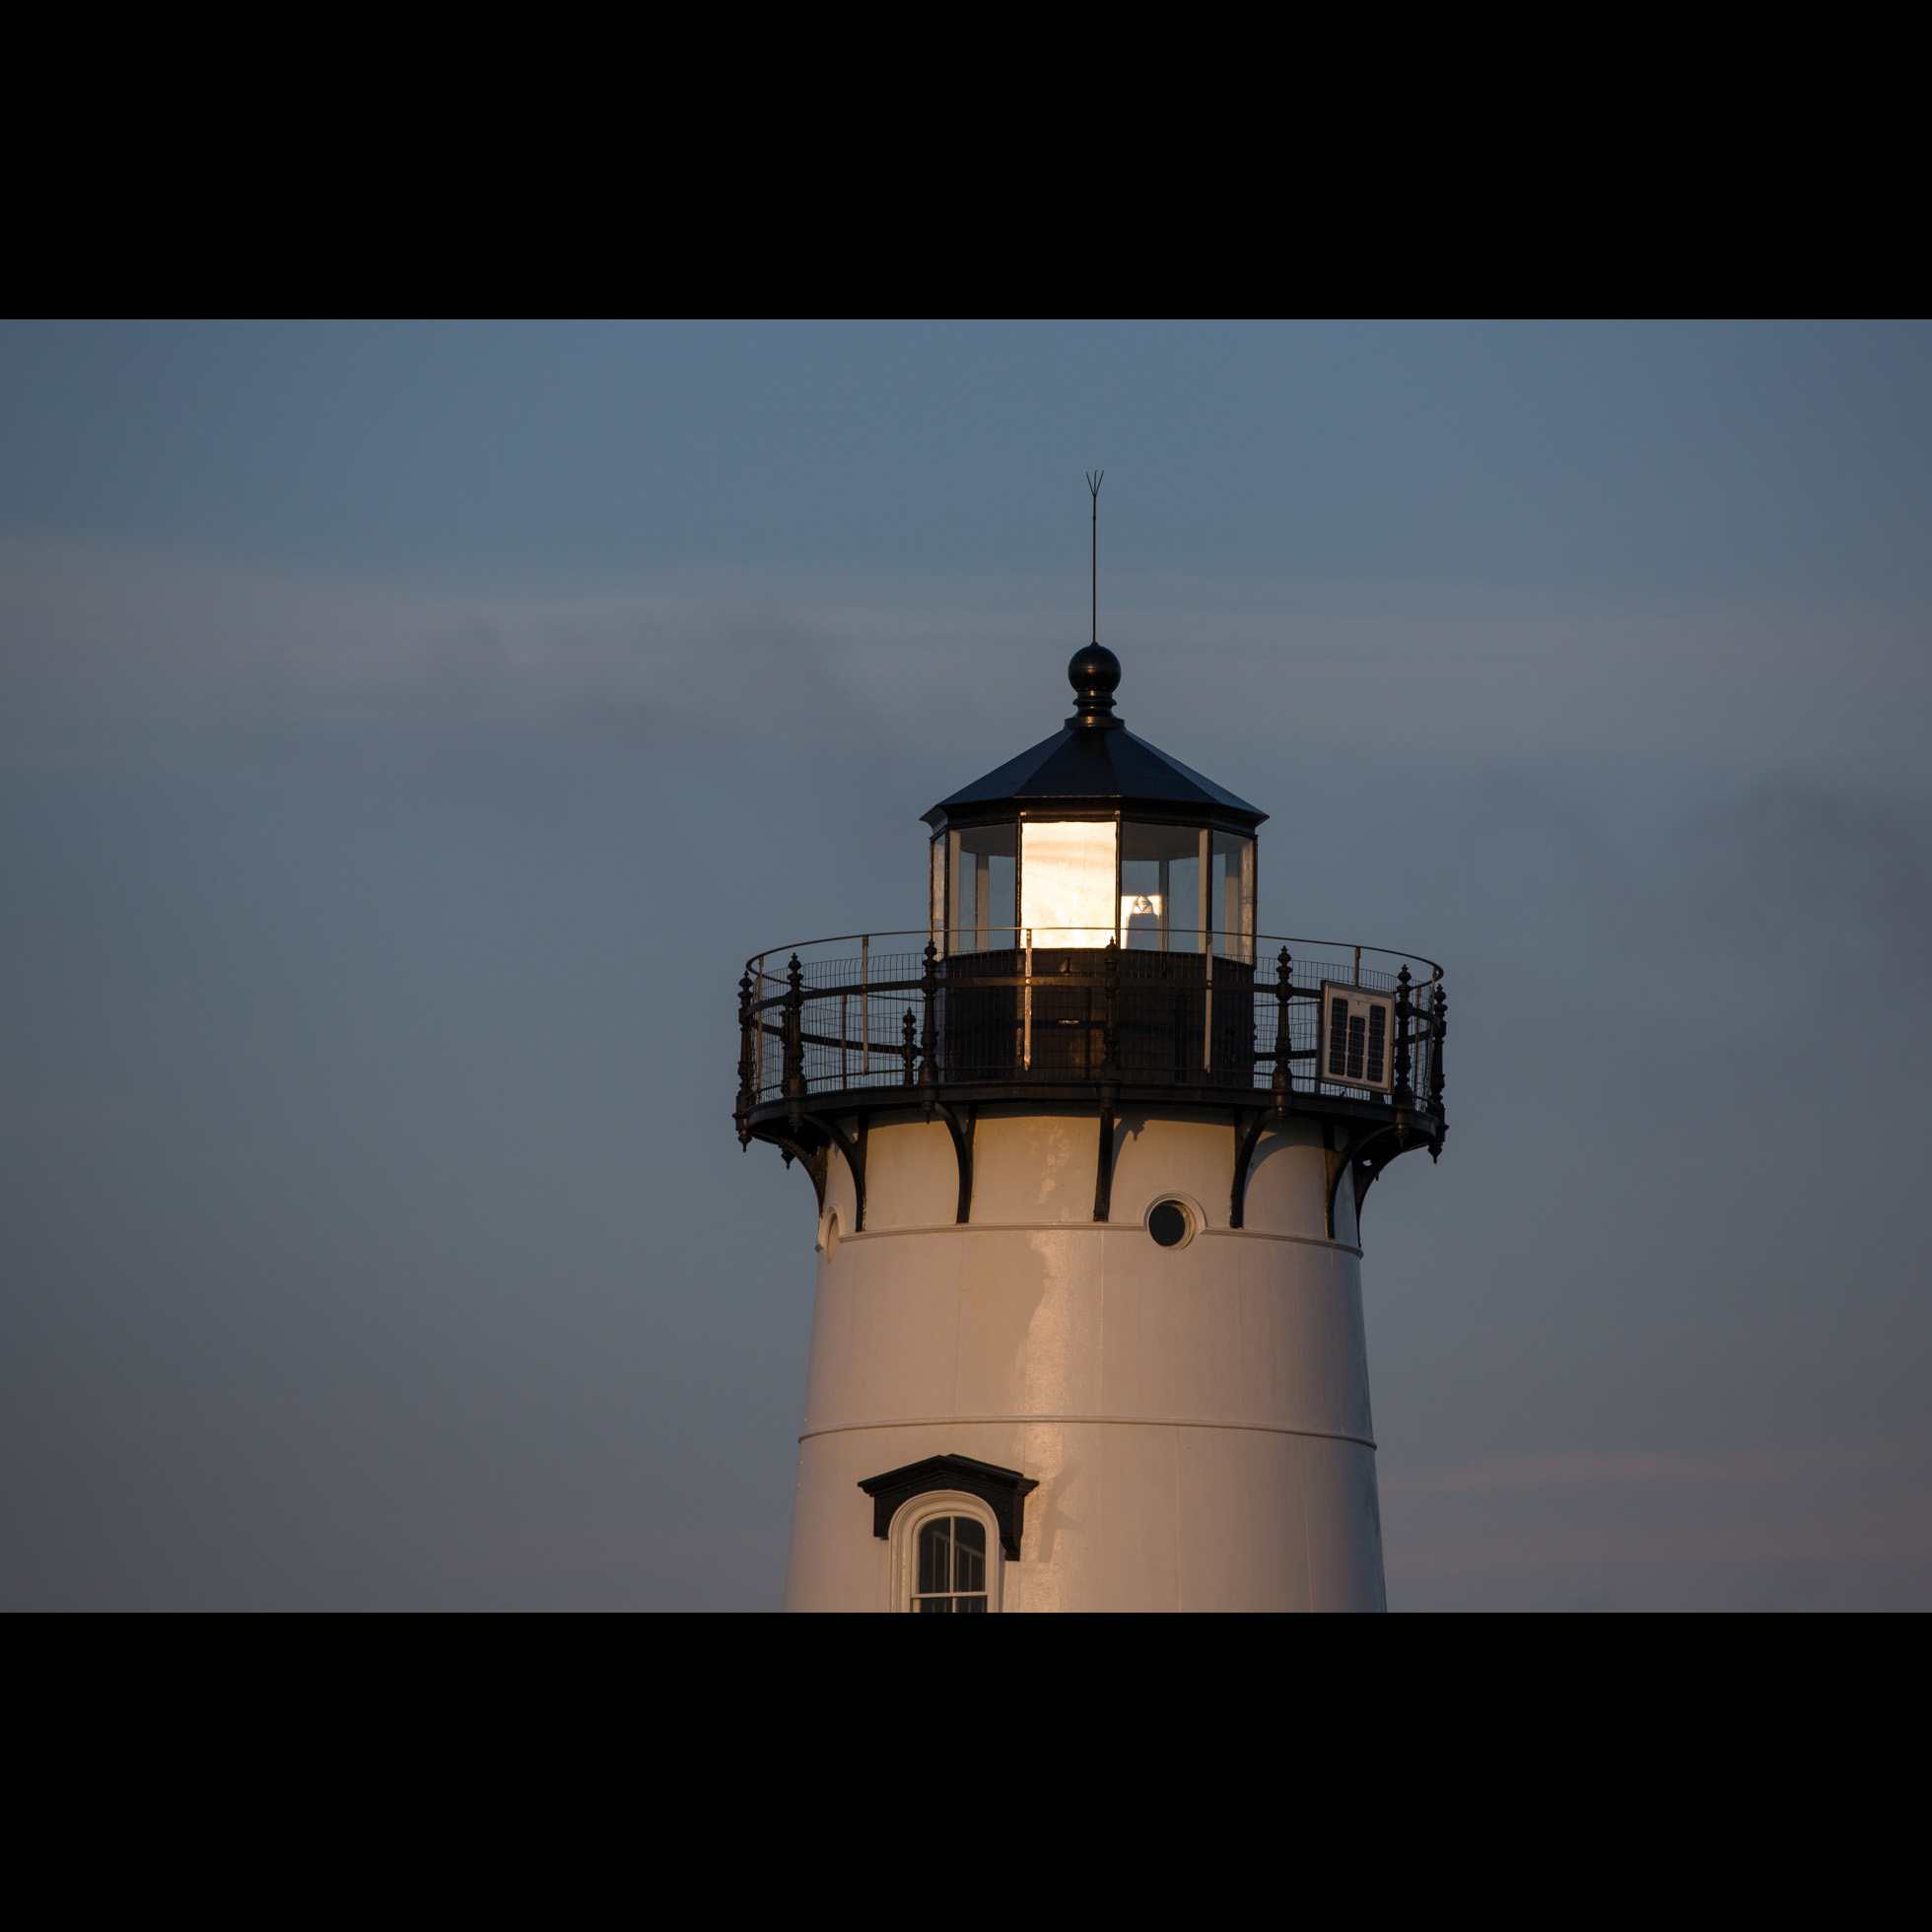 7.28 LIGHTHOUSE COMING